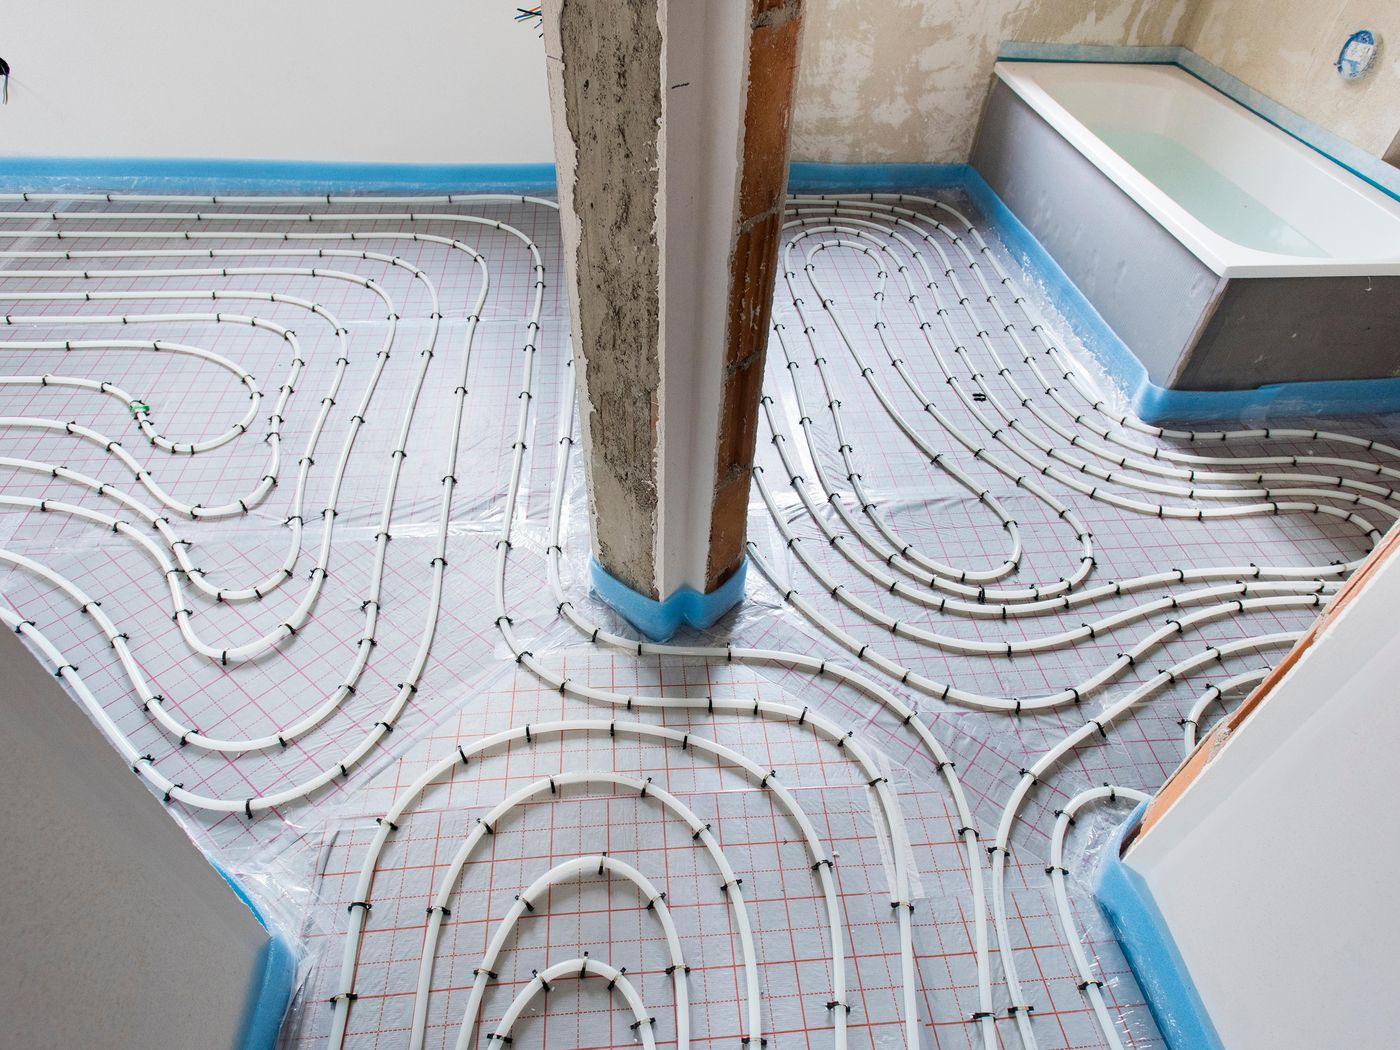 Radiant Floor Heating All About Electric And Hydronic Systems This Old House